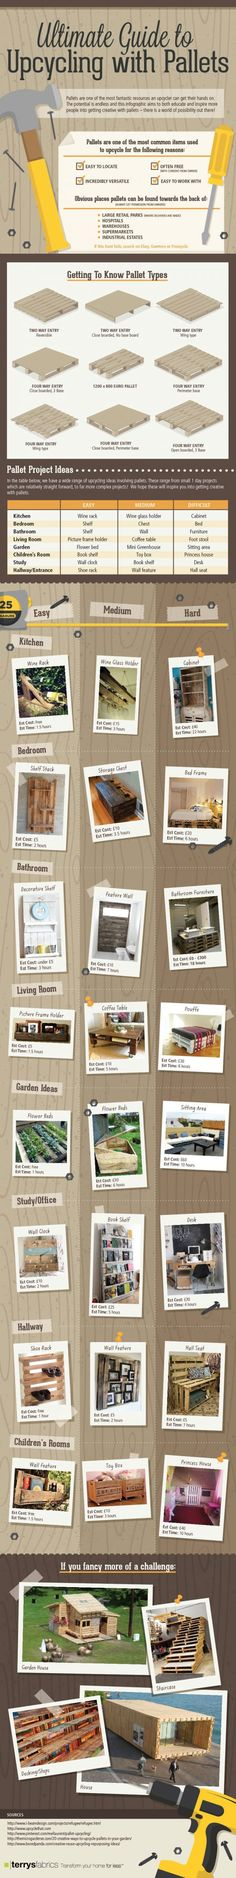 Ultimate Guide To Upcycling Pallets In this Ultimate Guide To Upcycling Pallets, you'll discover that pallets are excellent material to upcycle into many projects. They can be as simple as a shelf, to an entire shed or even a home! Plus, they're also readily available all around us. We at www.1001pallets.com think our website proves that much for sure!